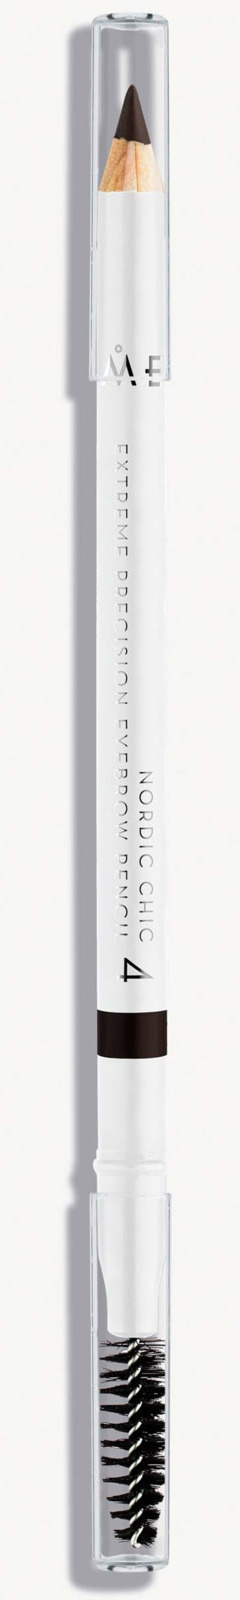 Карандаш для бровей Lumene Nordic Chic, №04, 1.2 г lumene nordic chic under eye concealer